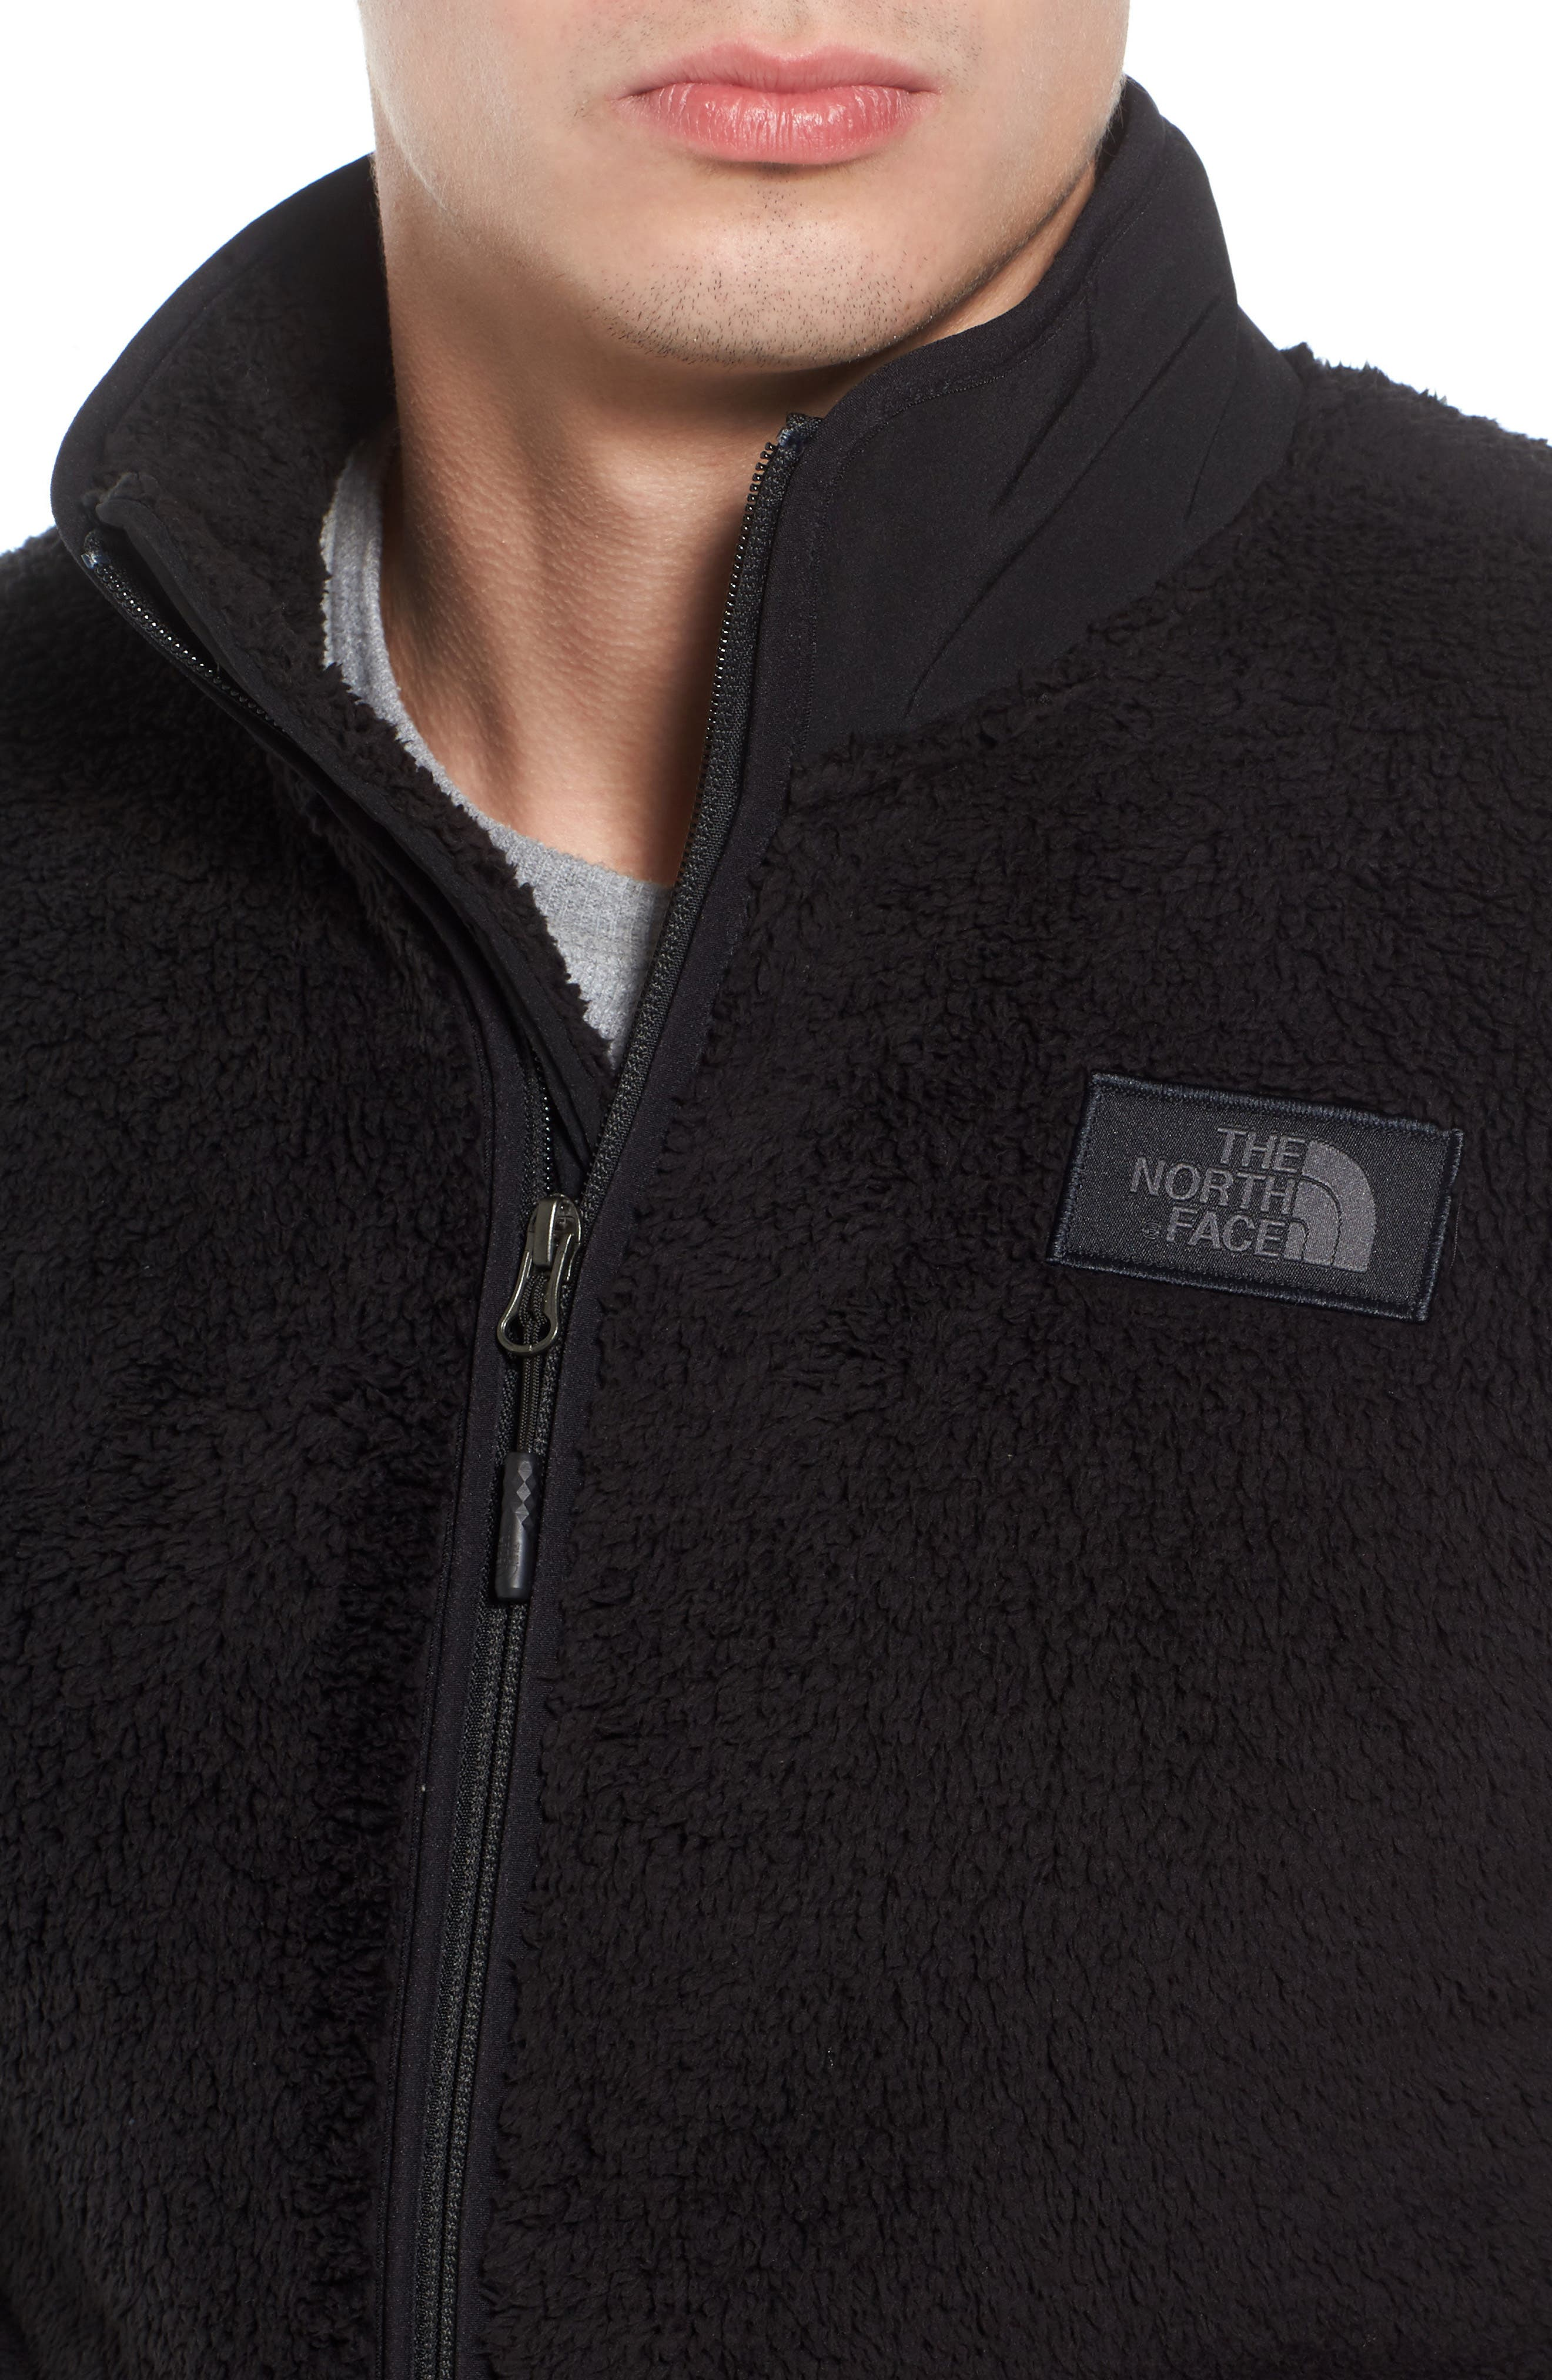 THE NORTH FACE, Campshire Zip Fleece Jacket, Alternate thumbnail 5, color, 001